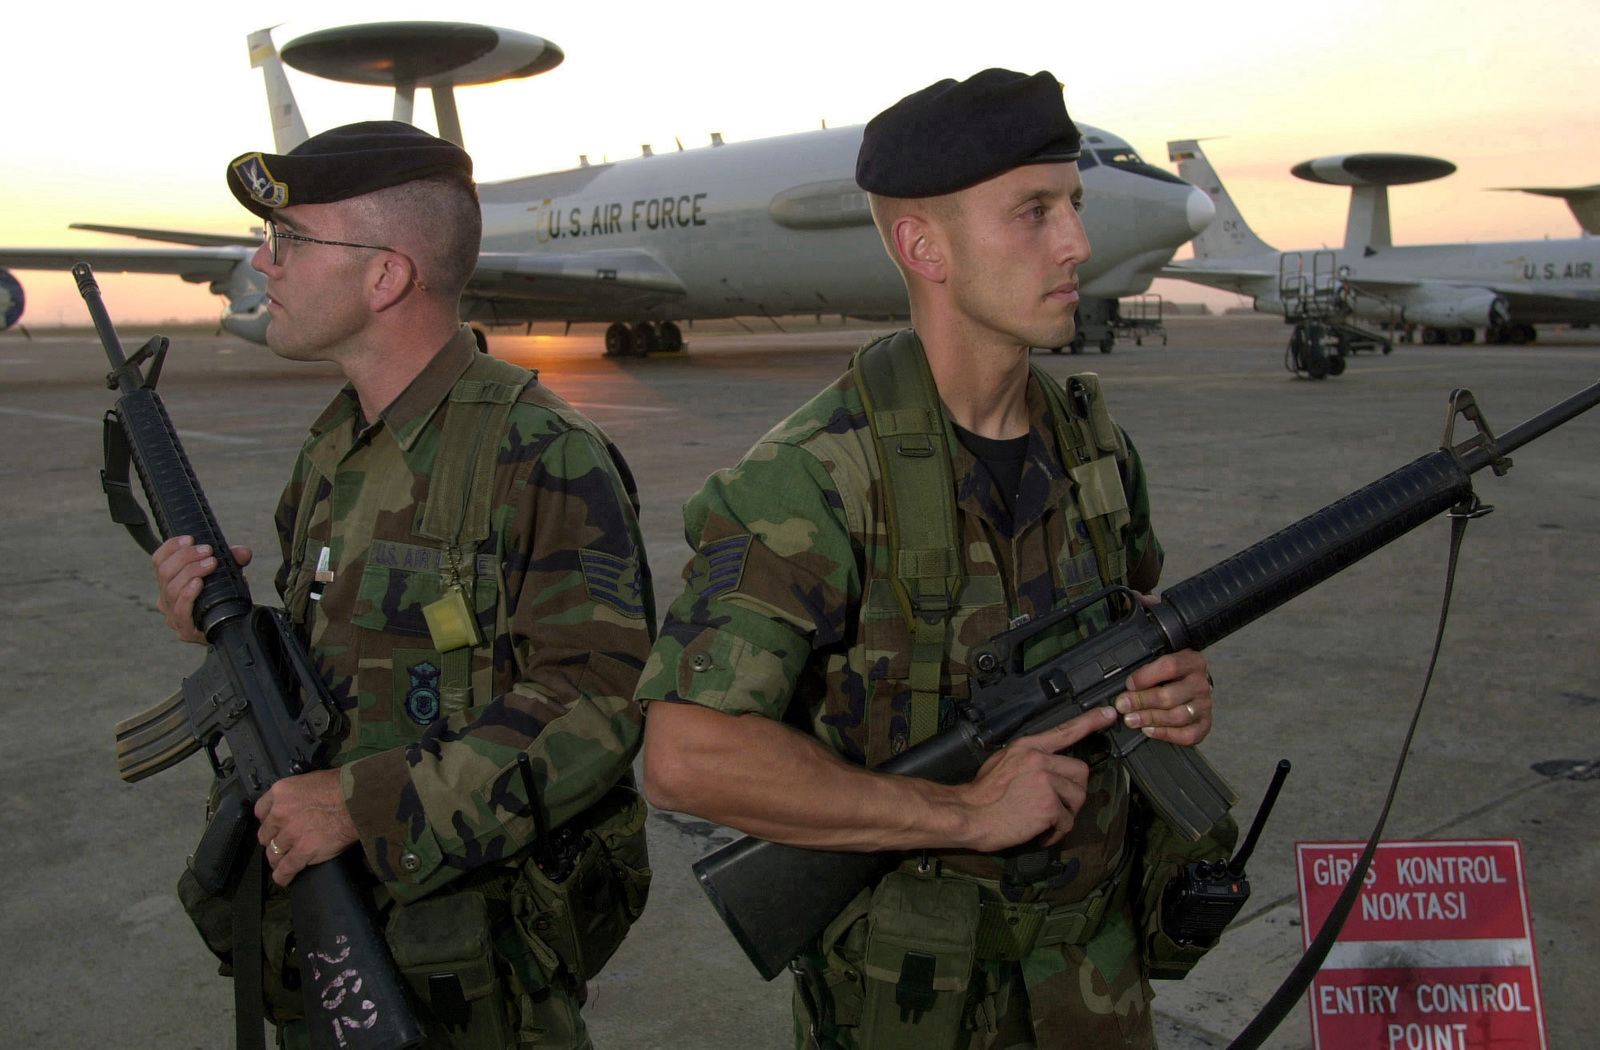 US Air Force (USAF) Security Police (SP) STAFF Sergeant (SSGT) Paul Evans (left), 172nd Fighter Wing (FW) and USAF SSGT John Duly, 175th FW, both armed with 5.56mm M16A2 rifles, guard USAF E-3C Sentry Airborne Early Warning and Control System (AWACS) aircraft on the flight line at Incirlik Air Base (AB), Turkey, while deployed in support of Operation NORTHERN WATCH